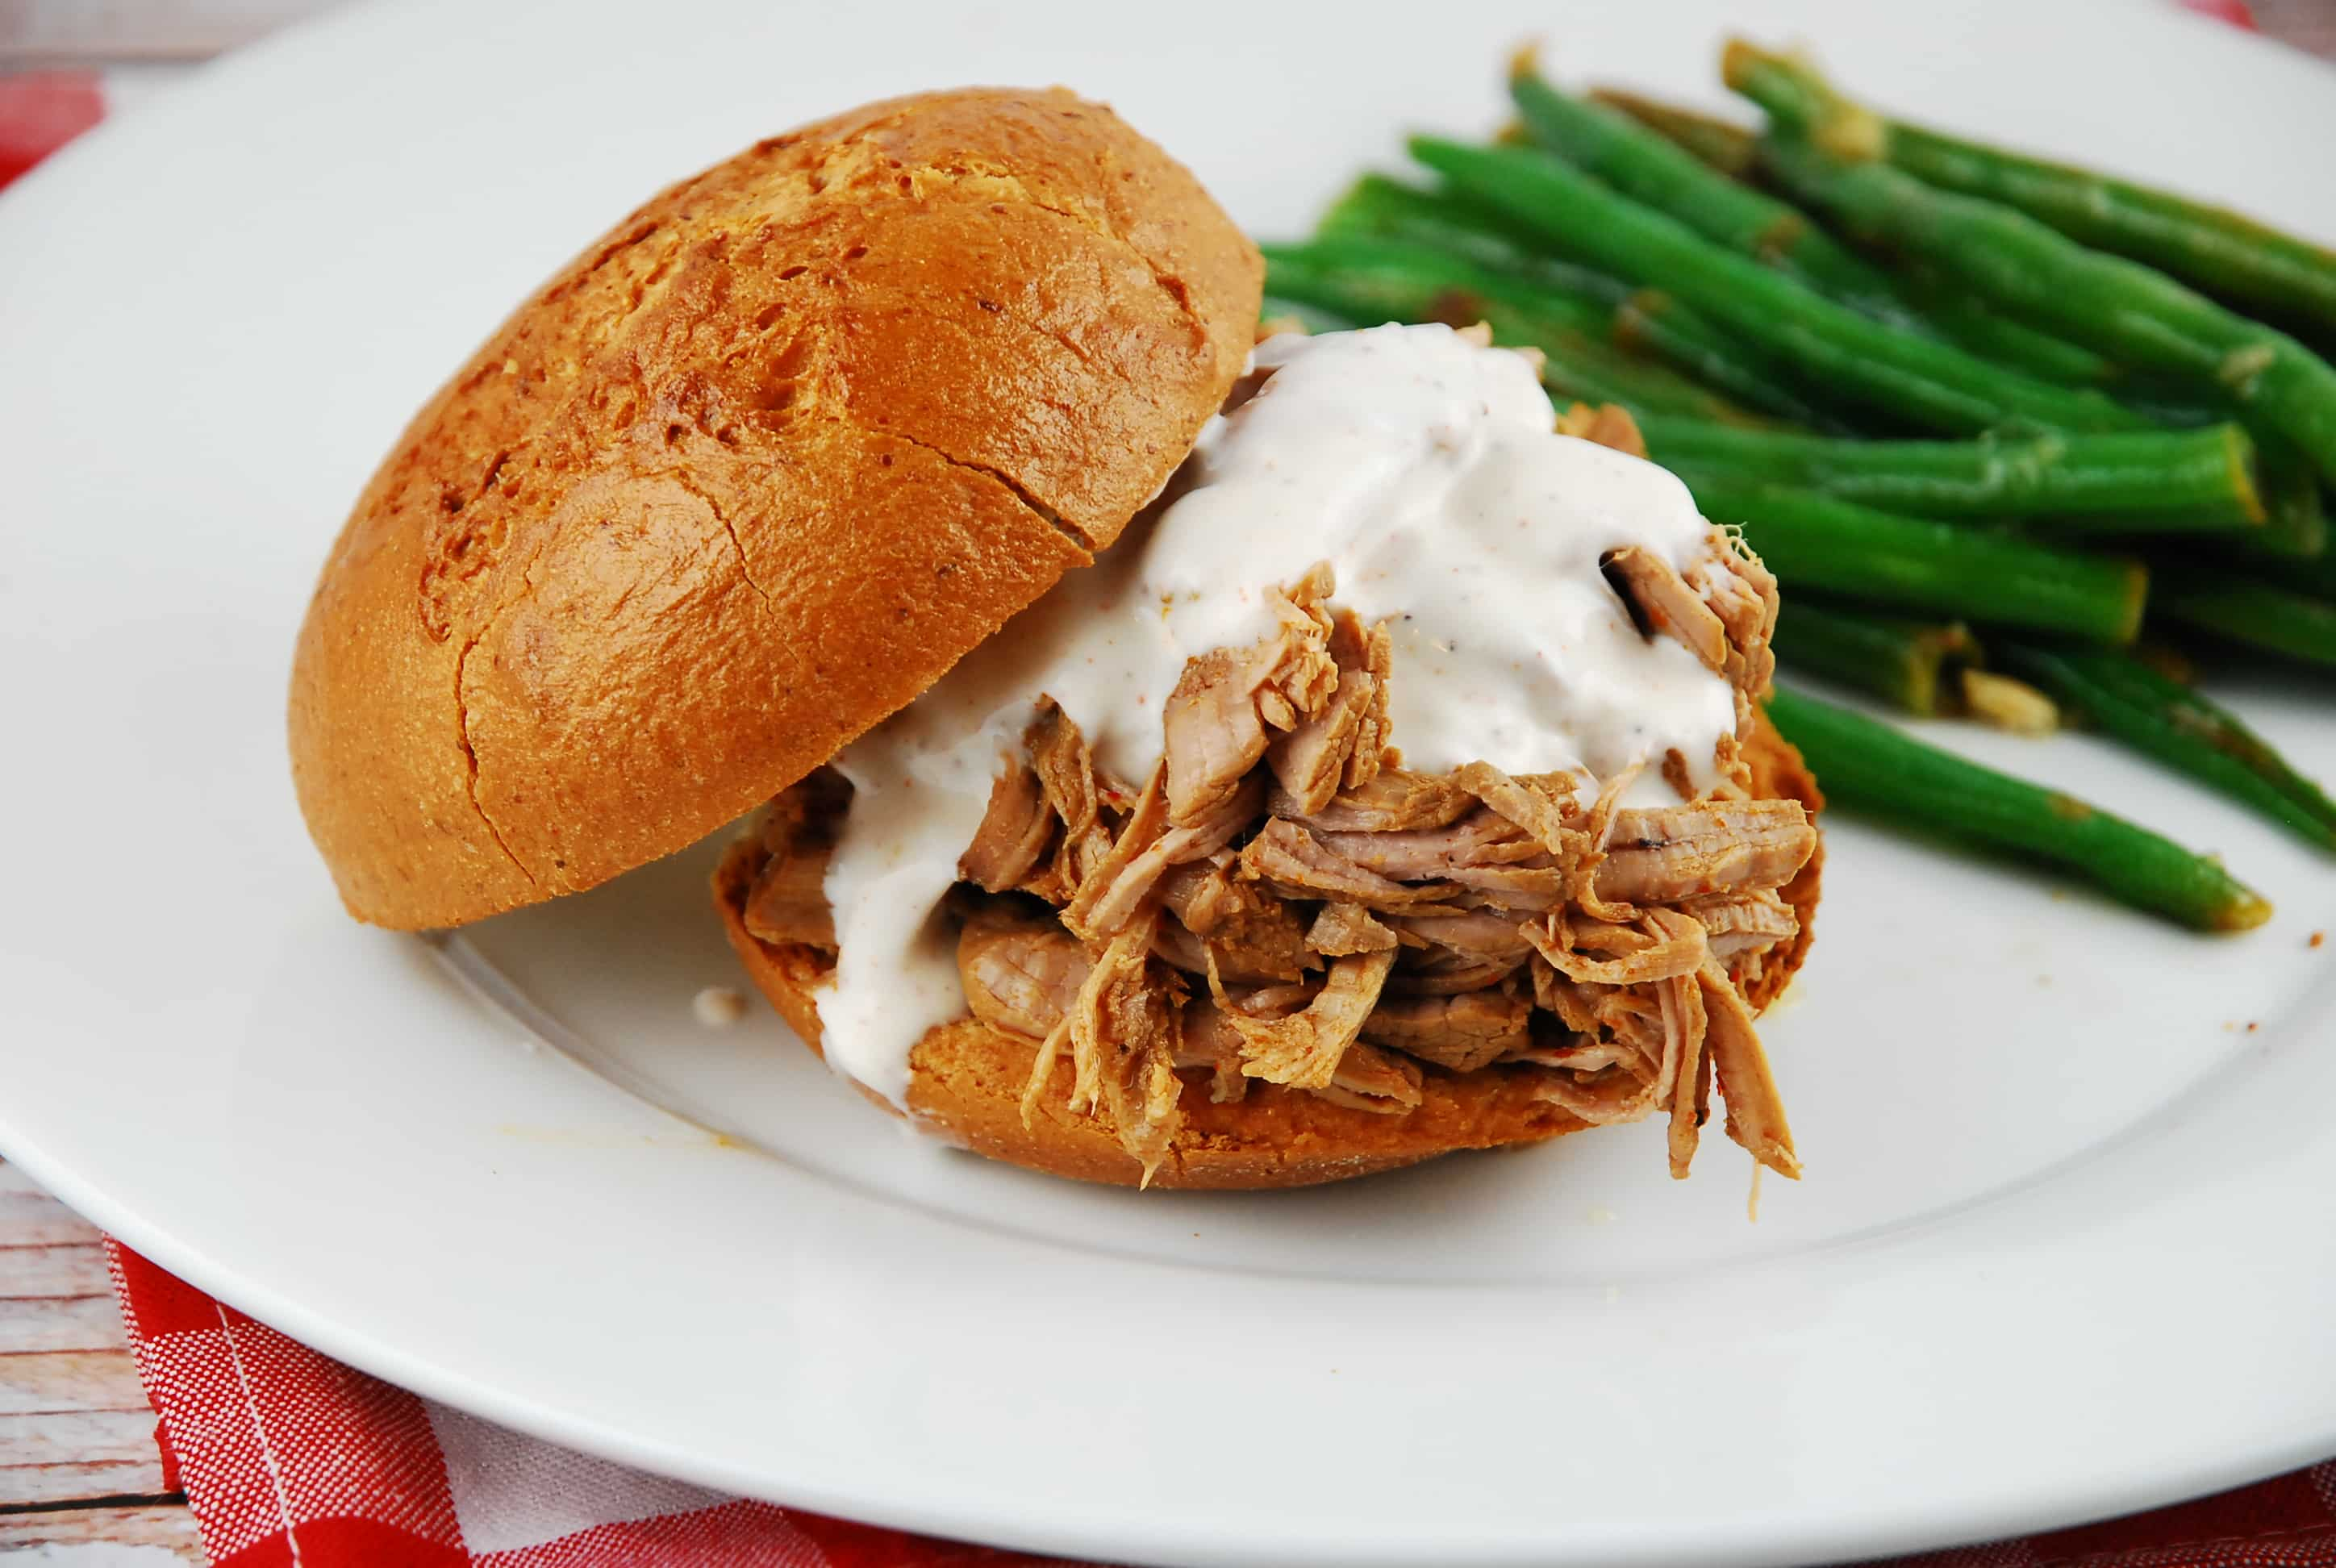 Pulled Pork Sandwich with White BBQ Sauce - 9 Points + - LaaLoosh